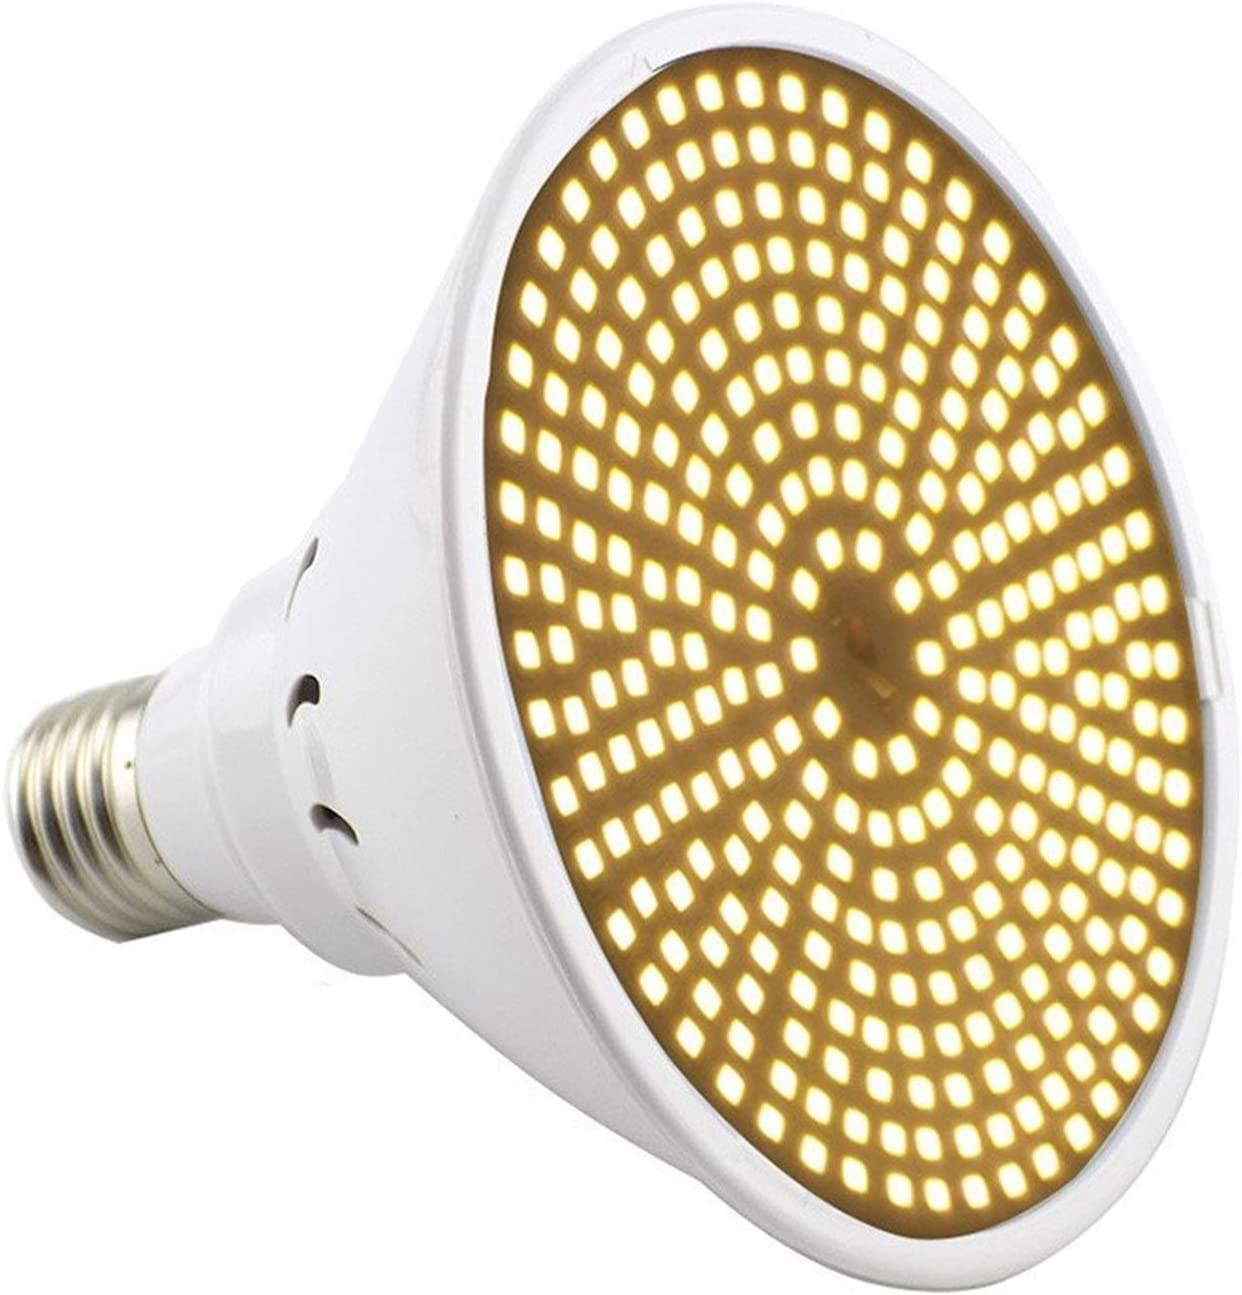 Plant Growth Light New 290 Free Shipping Grow Bulbs Indoor E27 LED Manufacturer regenerated product